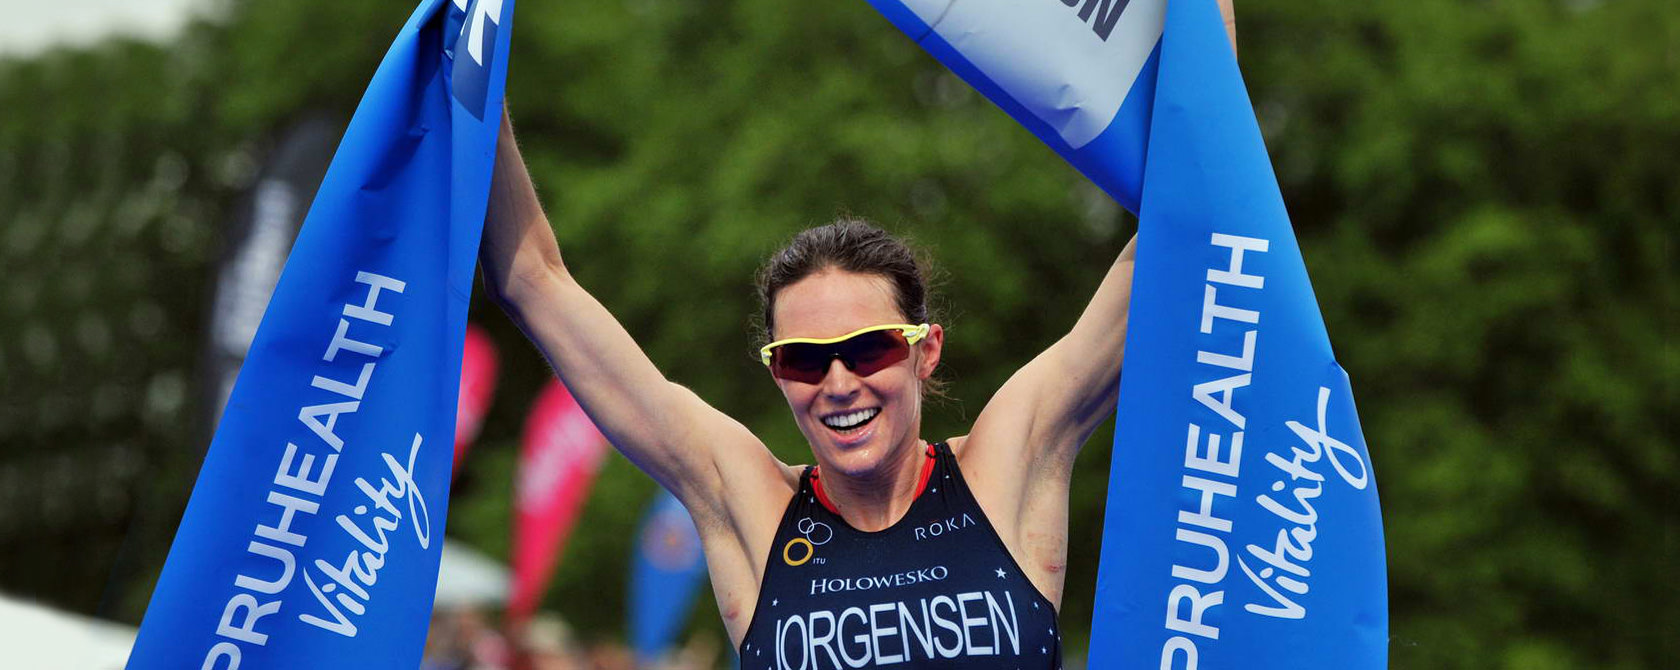 Gwen Jorgensen – World Champion Triathlete 2014